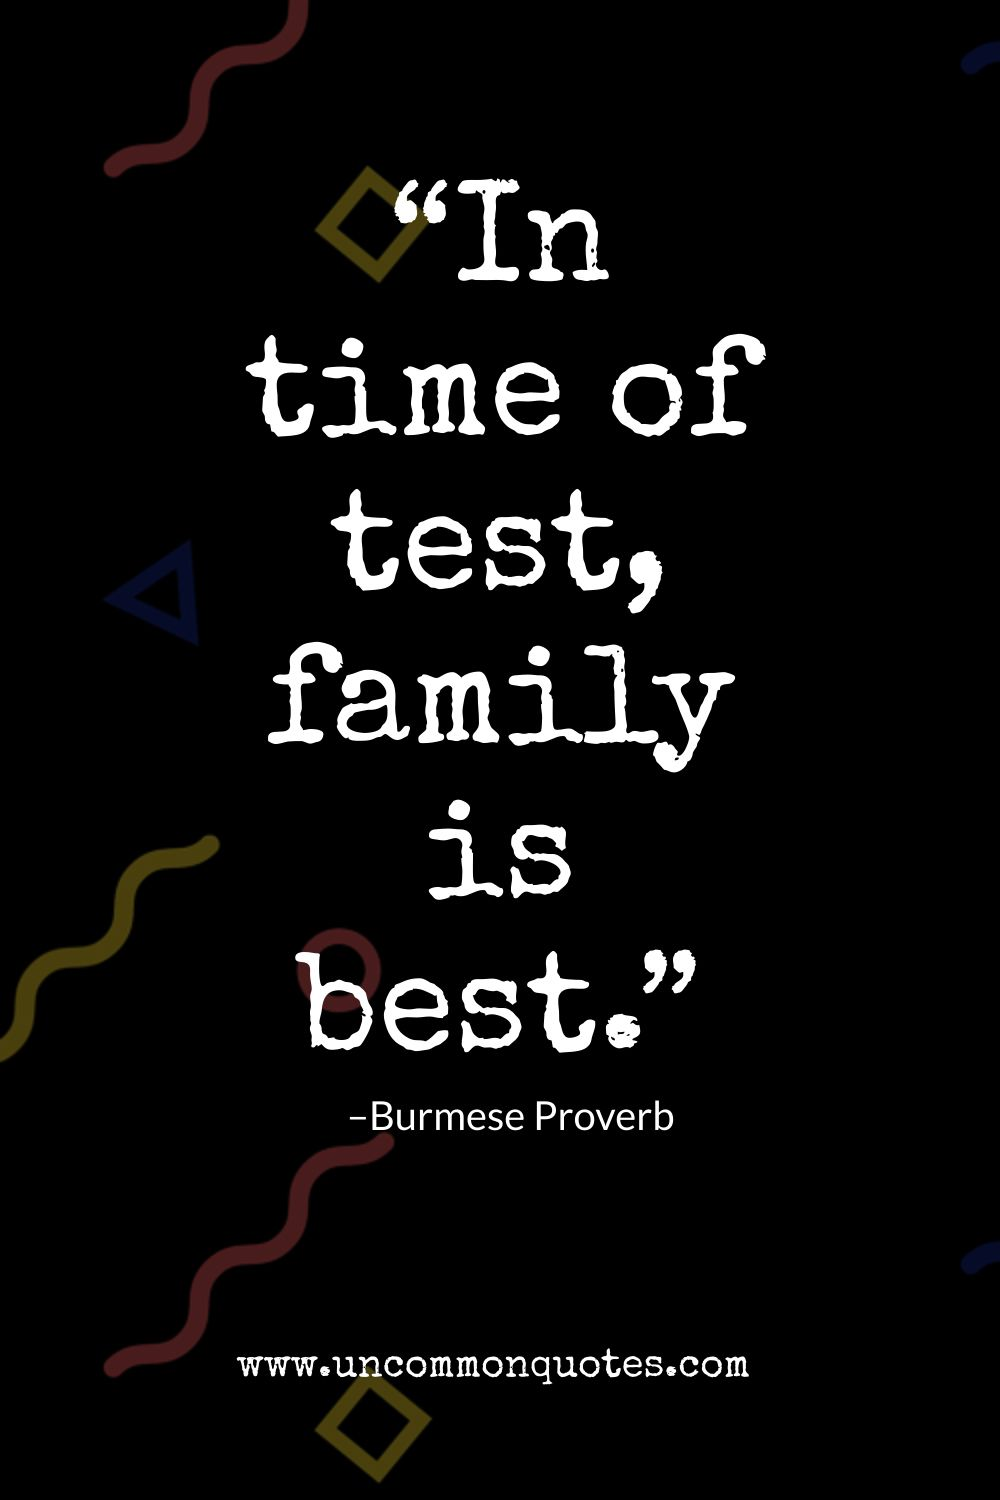 Challenges of being in a step family don't have to be overwhelming. These quotes will help you keep your head up and find humor in the challenges that come with this type of family situation. Step-family relationships are hard, but these quotes can remind you that it's worth it! Read them now for some inspiration.